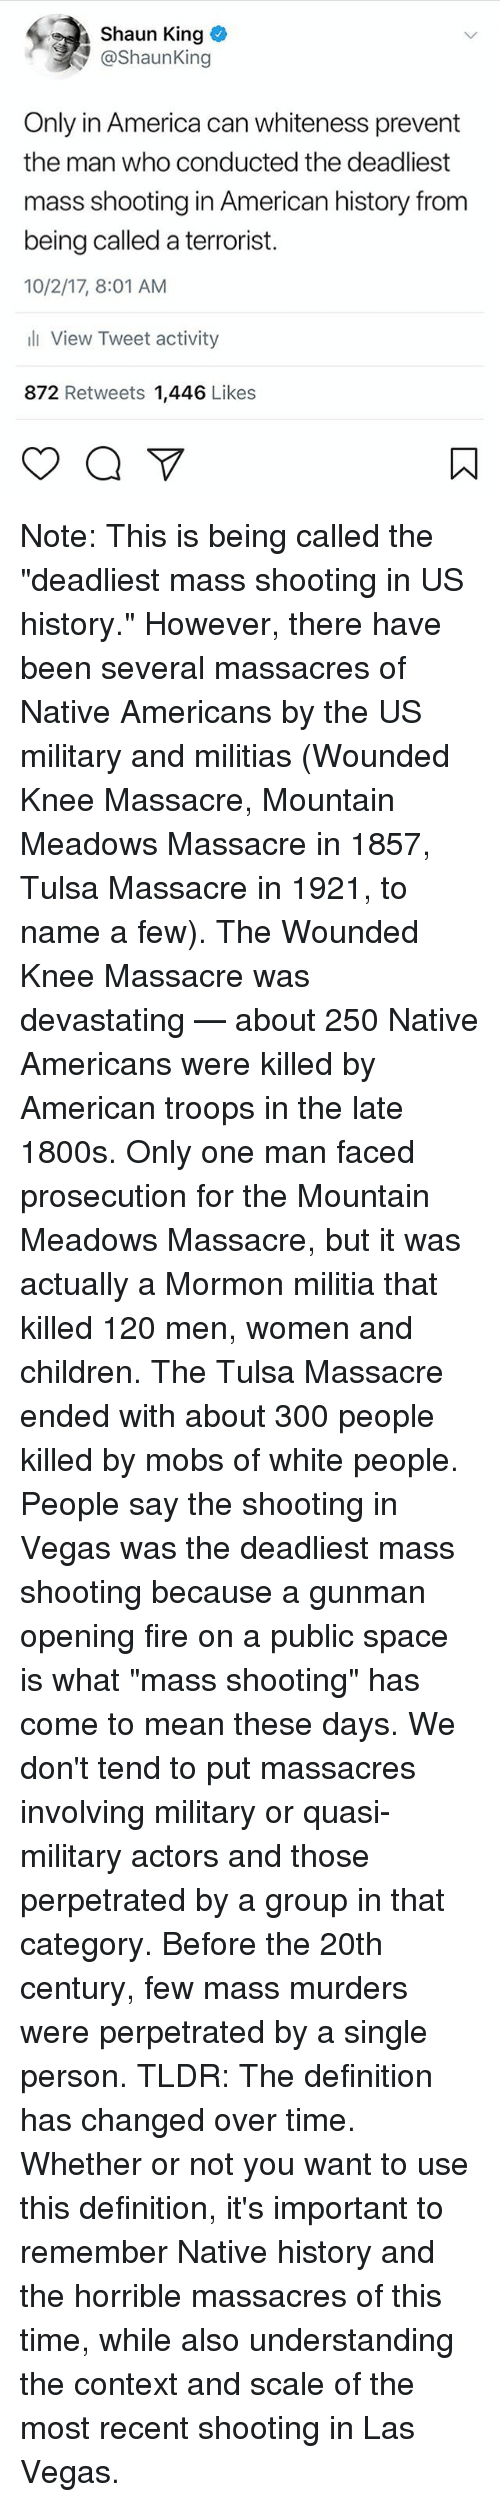 """us history: Shaun King  @ShaunKing  Only in America can whiteness prevent  the man who conducted the deadliest  mass shooting in American history from  being called a terrorist.  10/2/17, 8:01 AM  li View Tweet activity  872 Retweets 1,446 Likes Note: This is being called the """"deadliest mass shooting in US history."""" However, there have been several massacres of Native Americans by the US military and militias (Wounded Knee Massacre, Mountain Meadows Massacre in 1857, Tulsa Massacre in 1921, to name a few). The Wounded Knee Massacre was devastating — about 250 Native Americans were killed by American troops in the late 1800s. Only one man faced prosecution for the Mountain Meadows Massacre, but it was actually a Mormon militia that killed 120 men, women and children. The Tulsa Massacre ended with about 300 people killed by mobs of white people. People say the shooting in Vegas was the deadliest mass shooting because a gunman opening fire on a public space is what """"mass shooting"""" has come to mean these days. We don't tend to put massacres involving military or quasi-military actors and those perpetrated by a group in that category. Before the 20th century, few mass murders were perpetrated by a single person. TLDR: The definition has changed over time. Whether or not you want to use this definition, it's important to remember Native history and the horrible massacres of this time, while also understanding the context and scale of the most recent shooting in Las Vegas."""